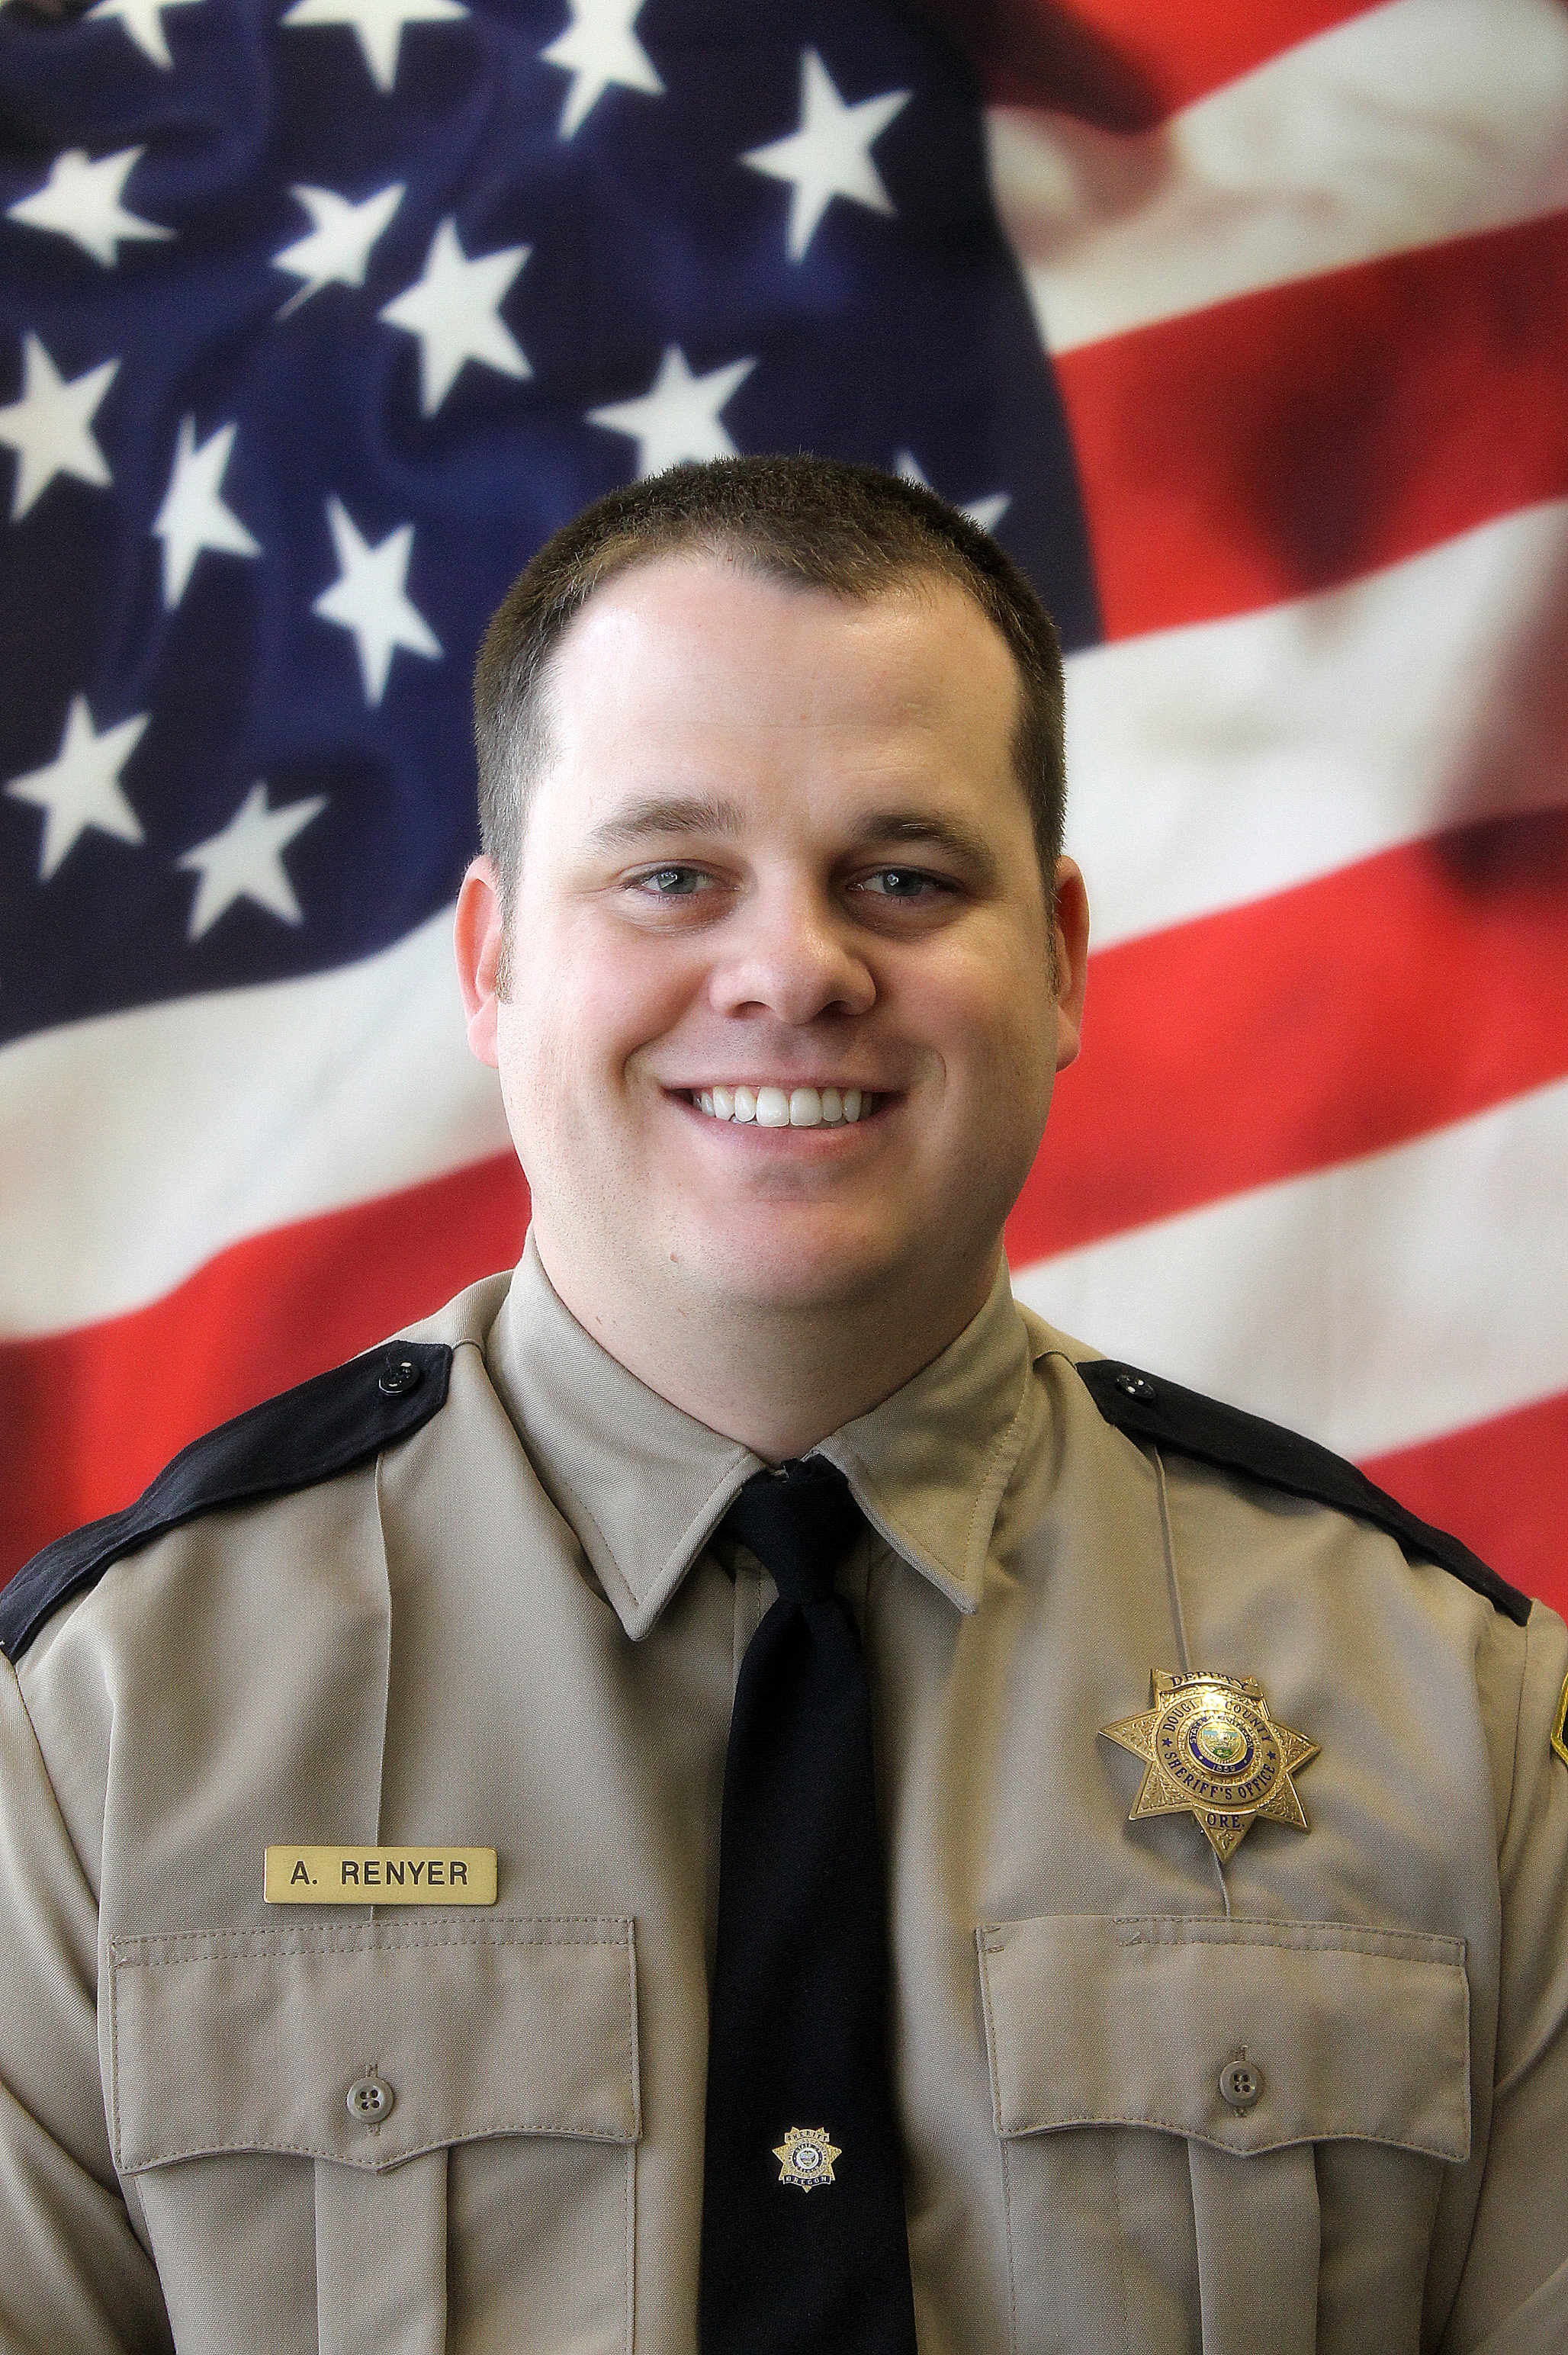 Senior Deputy Andrew Renyer was awarded the Jail Command Council's Deputy of the Year. (Photo courtesy Douglas County Sheriff's Office)<p></p>